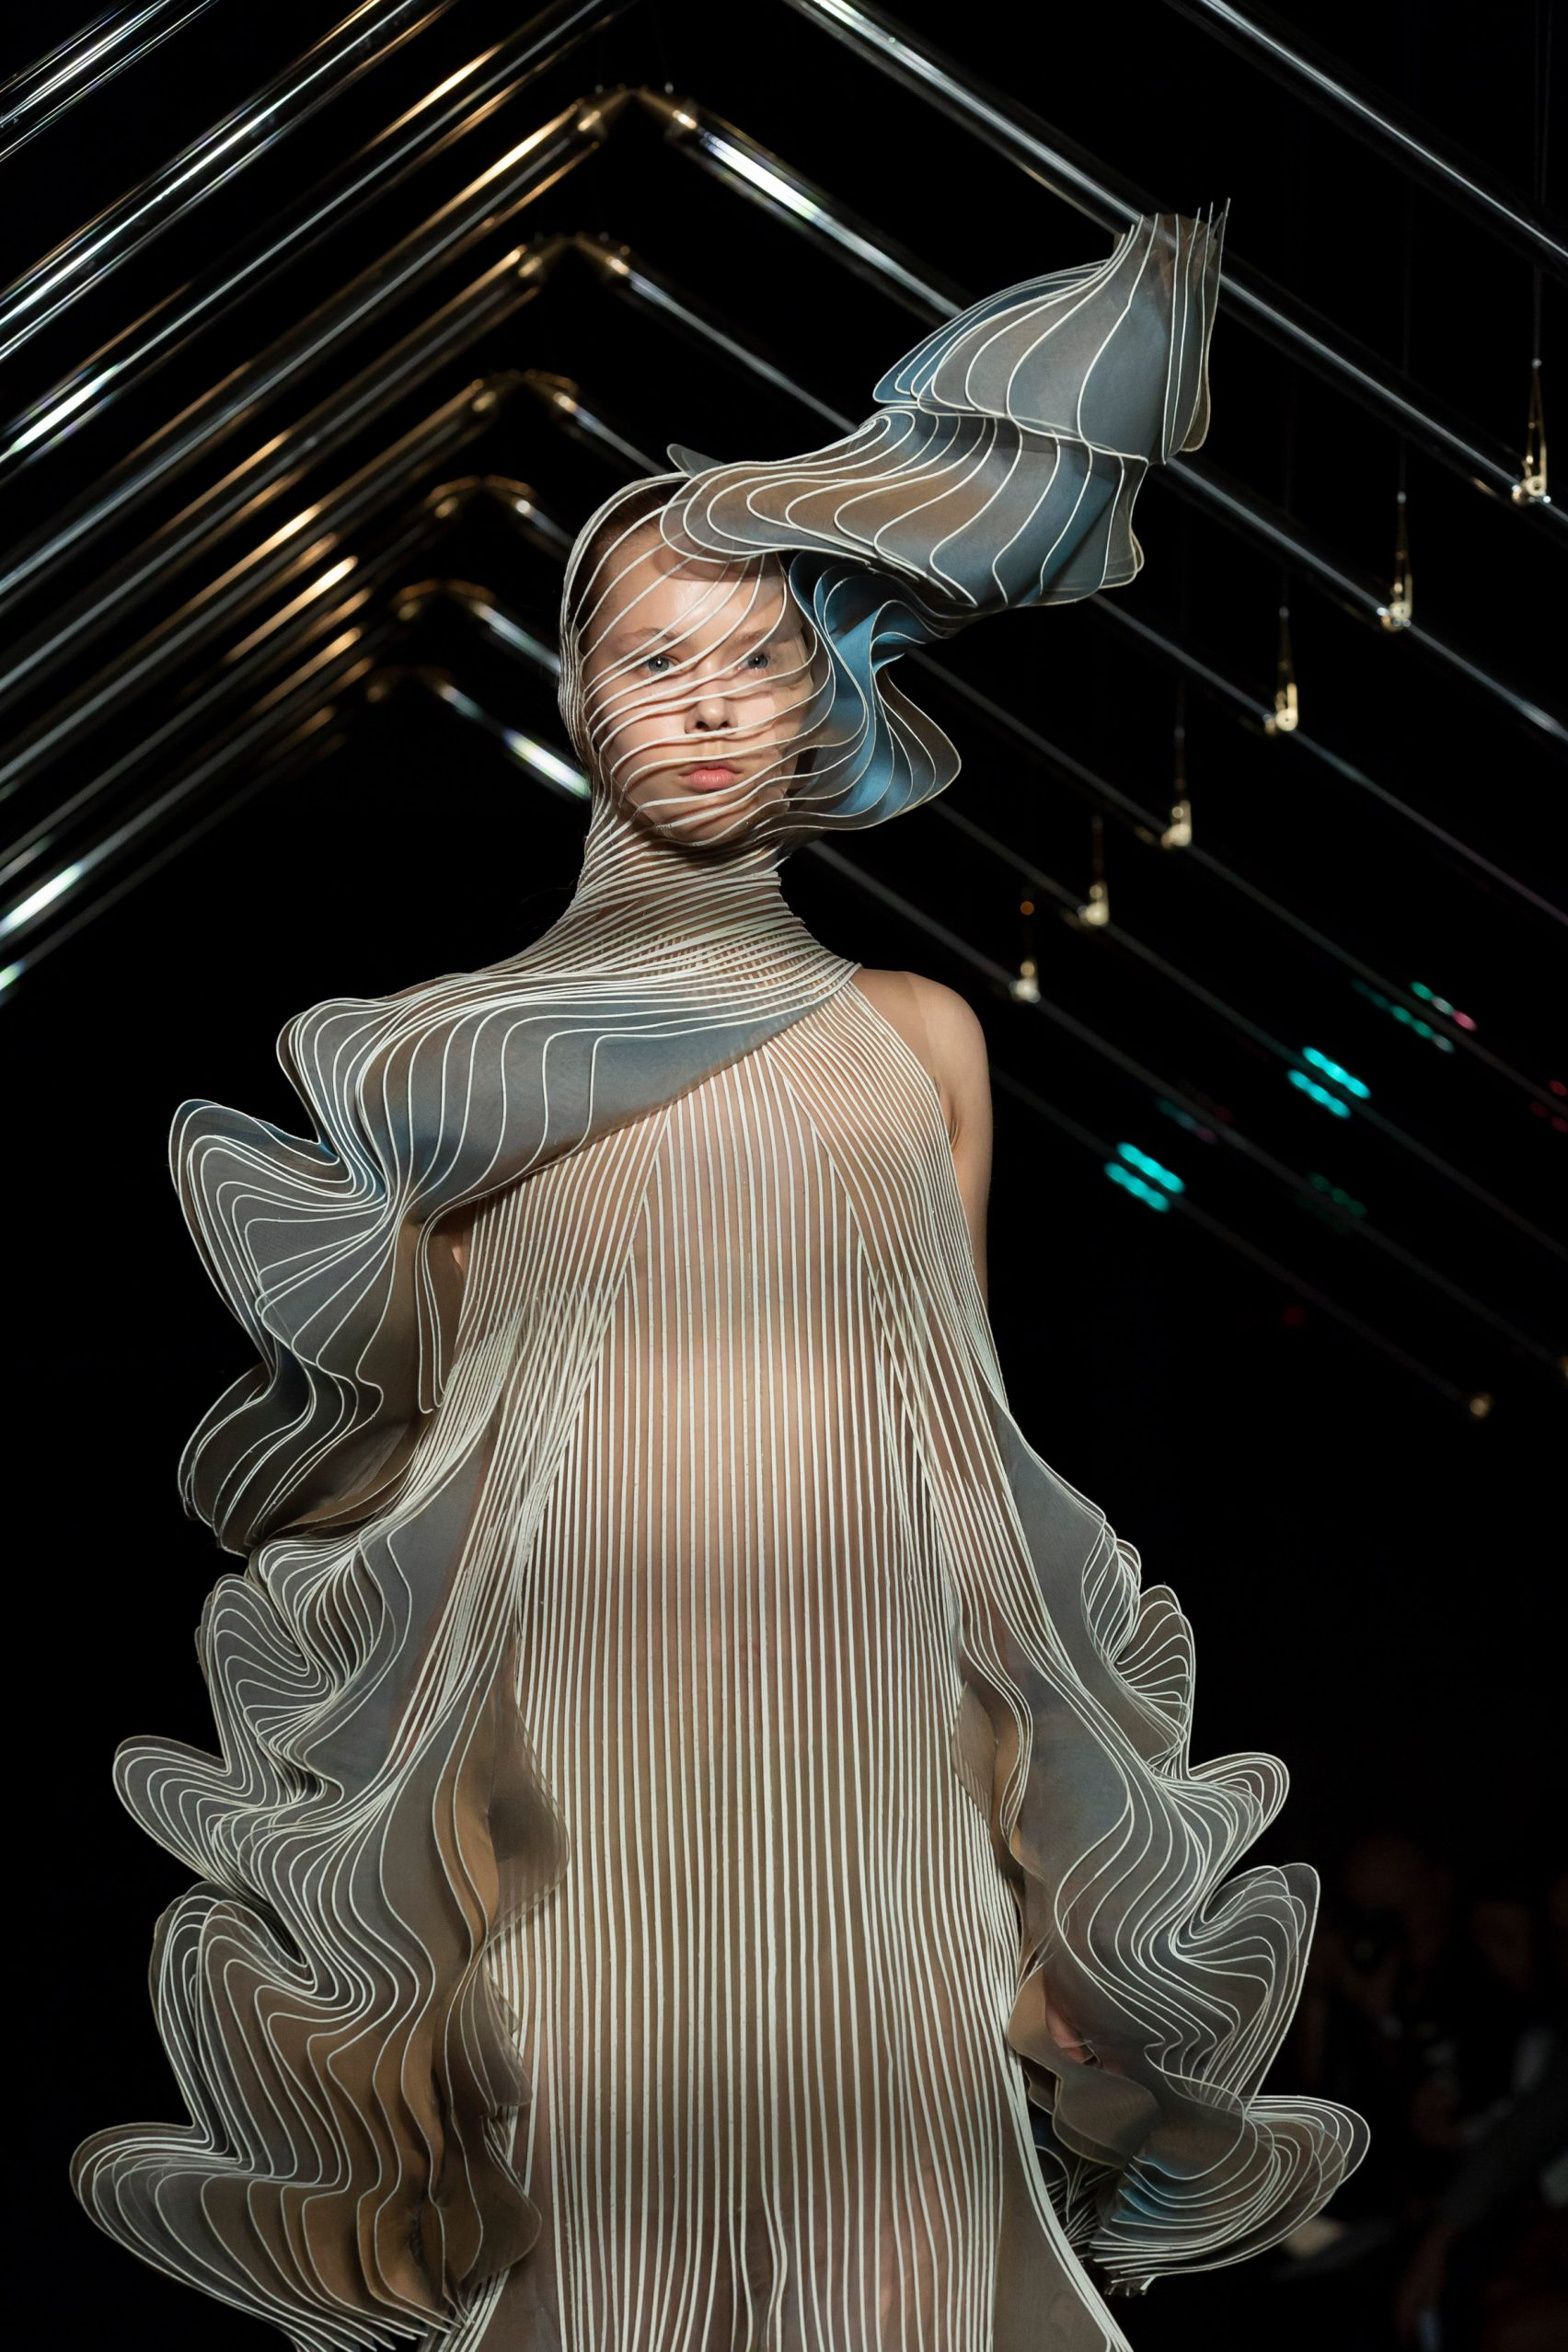 studio-drift-iris-van-herpen-fashion-design_dezeen_2364_col_4-1704x2556